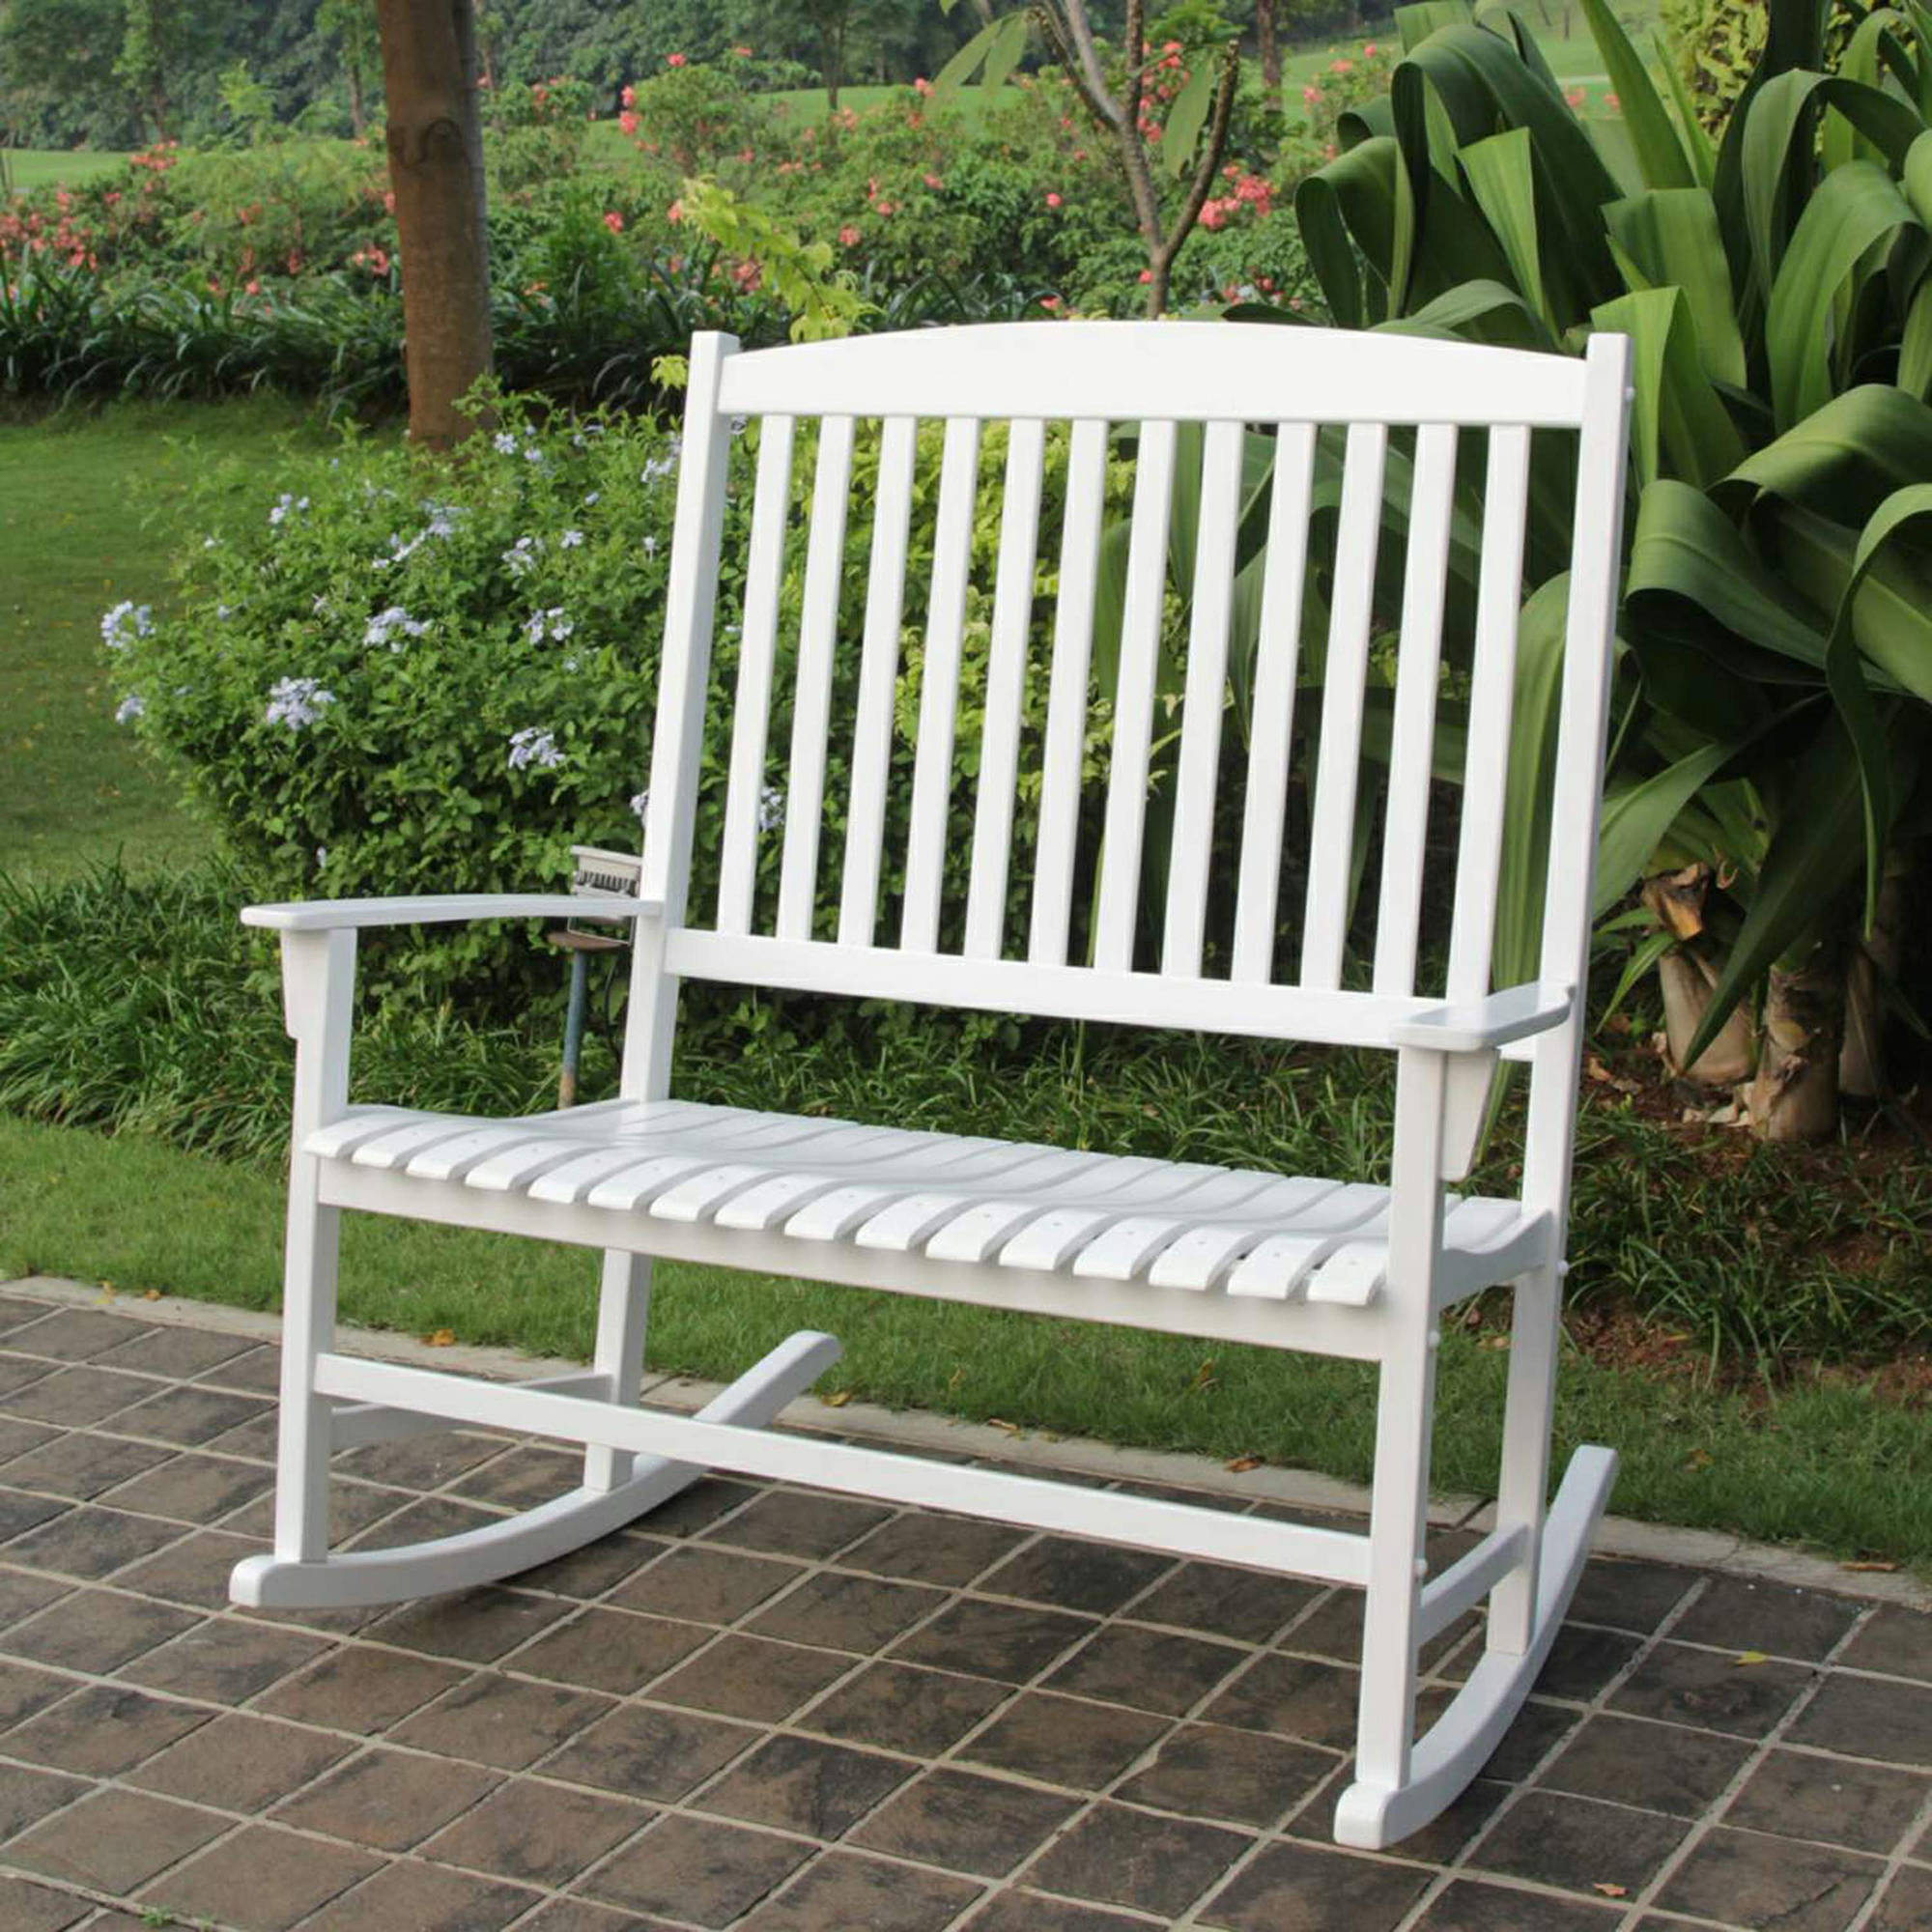 mainstays outdoor double rocking chair white seats 2 walmartcom - Wooden Garden Furniture Love Seats